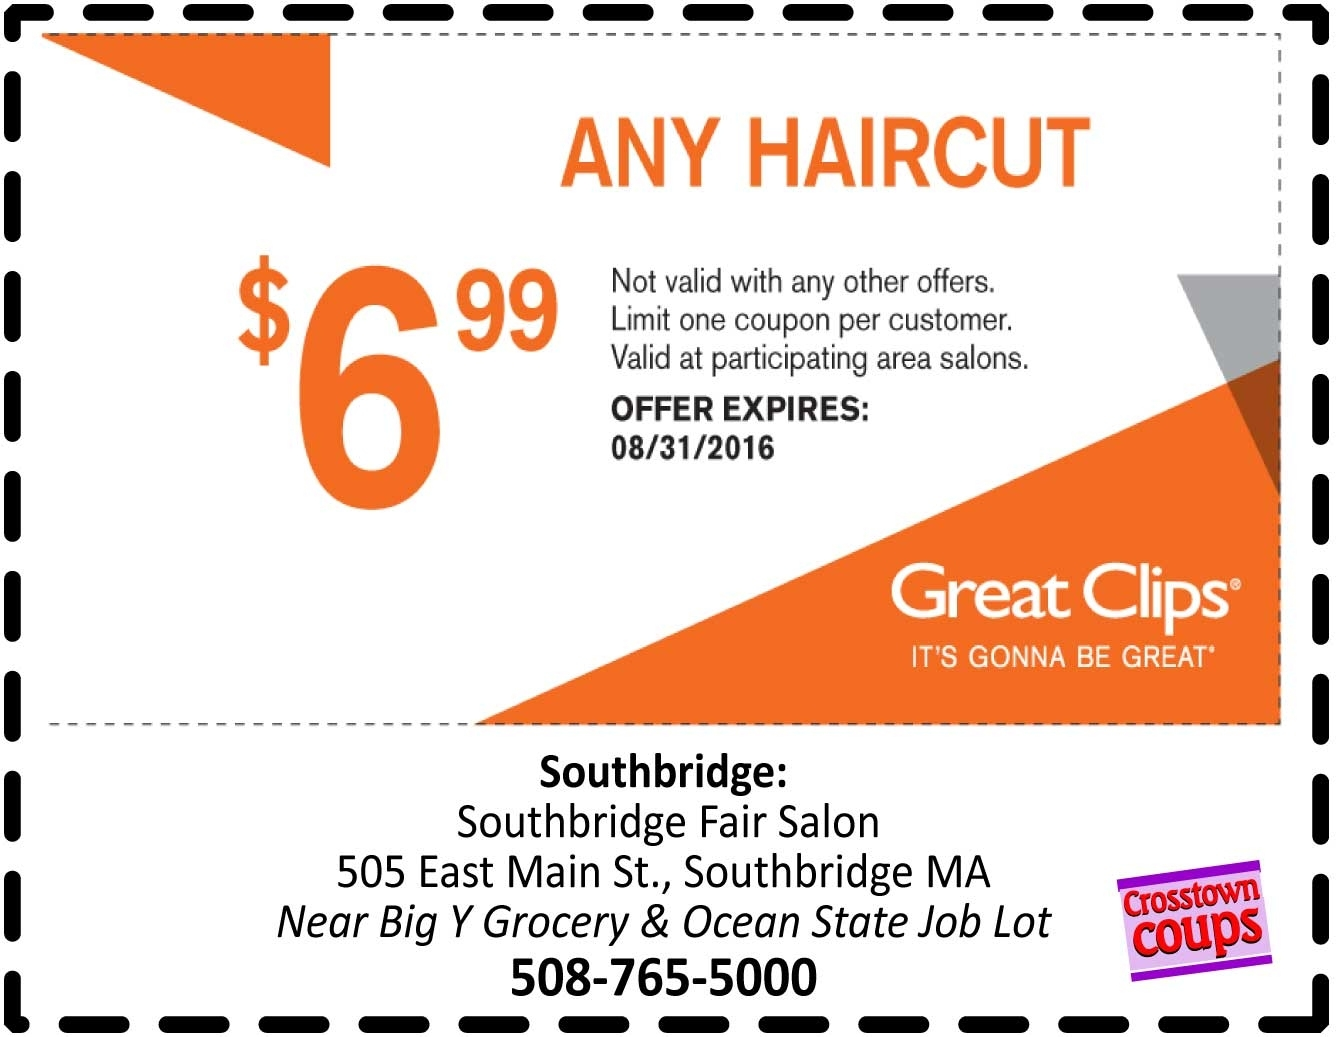 image regarding Sports Clips Free Haircut Printable Coupon called Haircut Coupon codes 2018 In close proximity to Me - Wavy Haircut